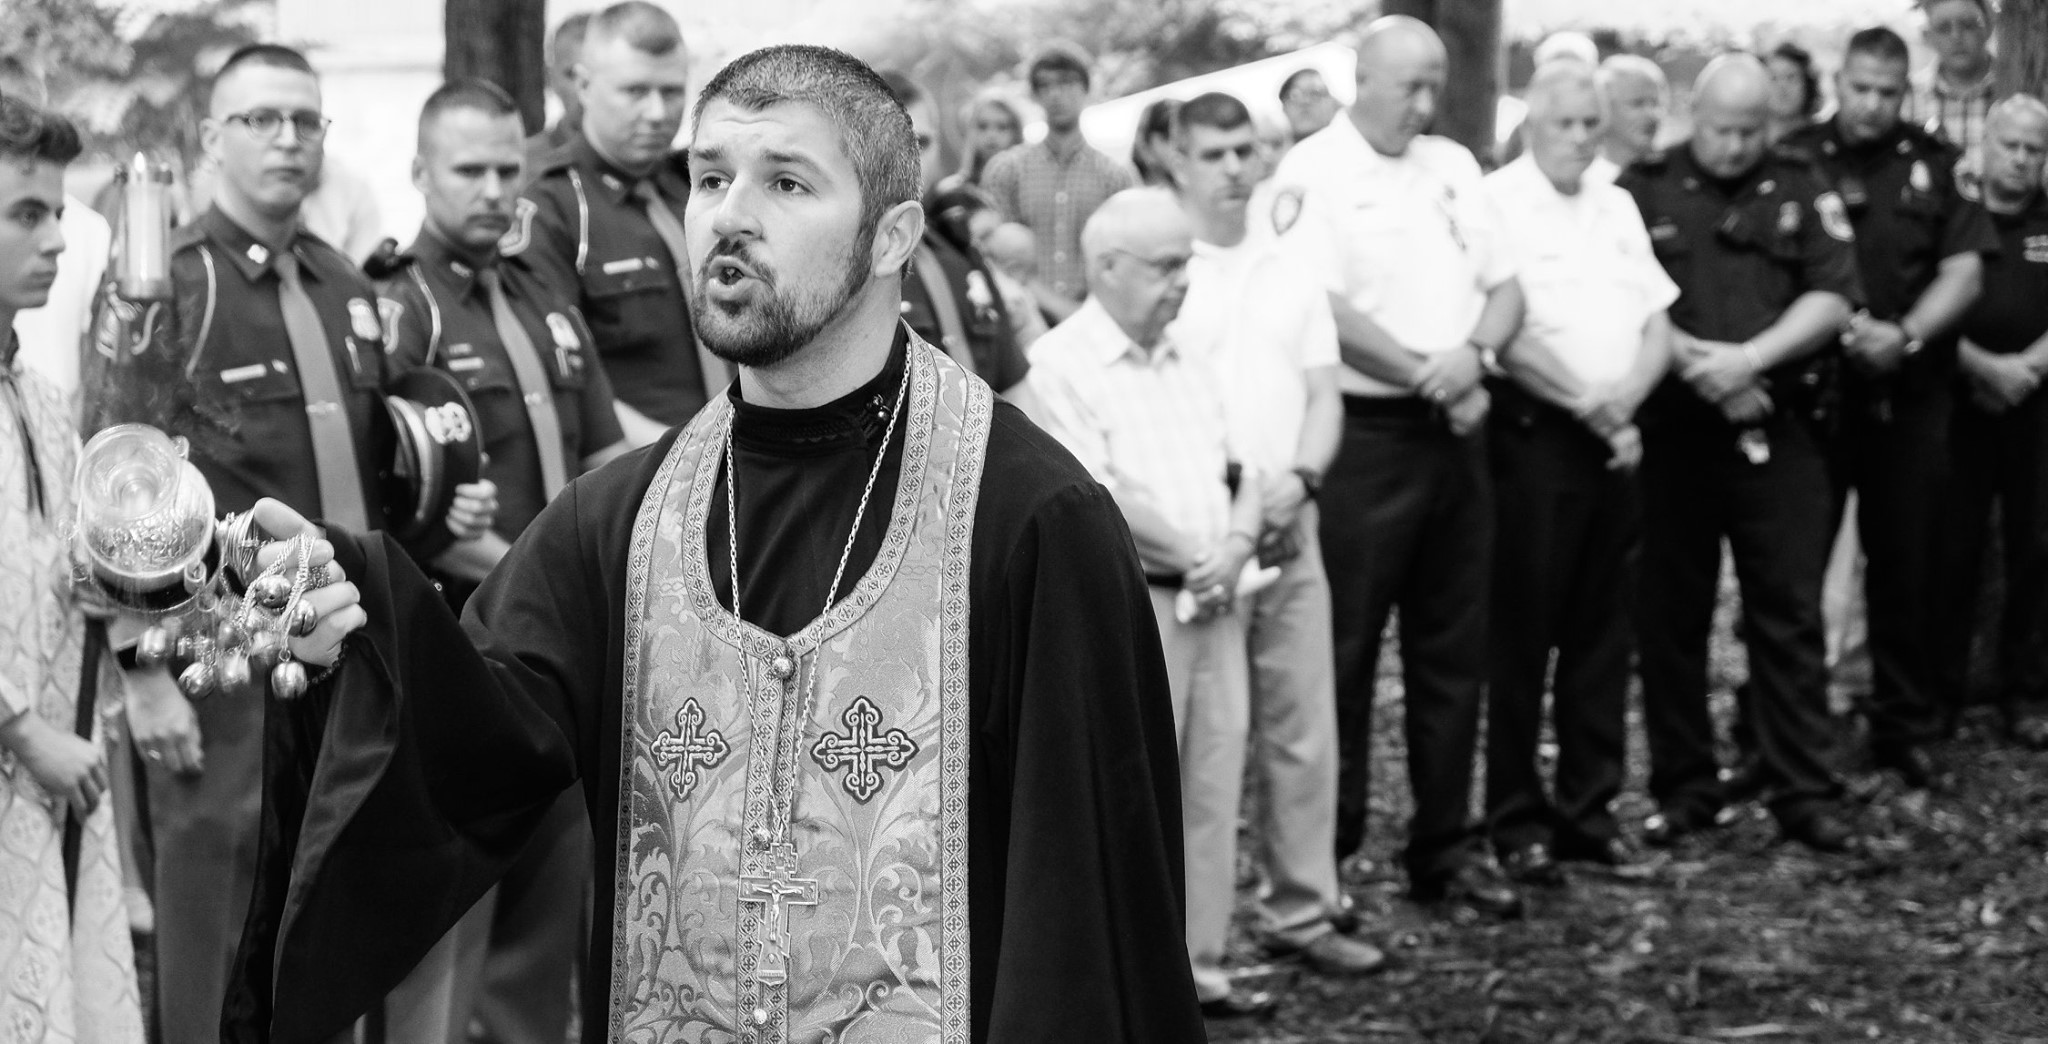 priest censing and praying with first responders in background black and white